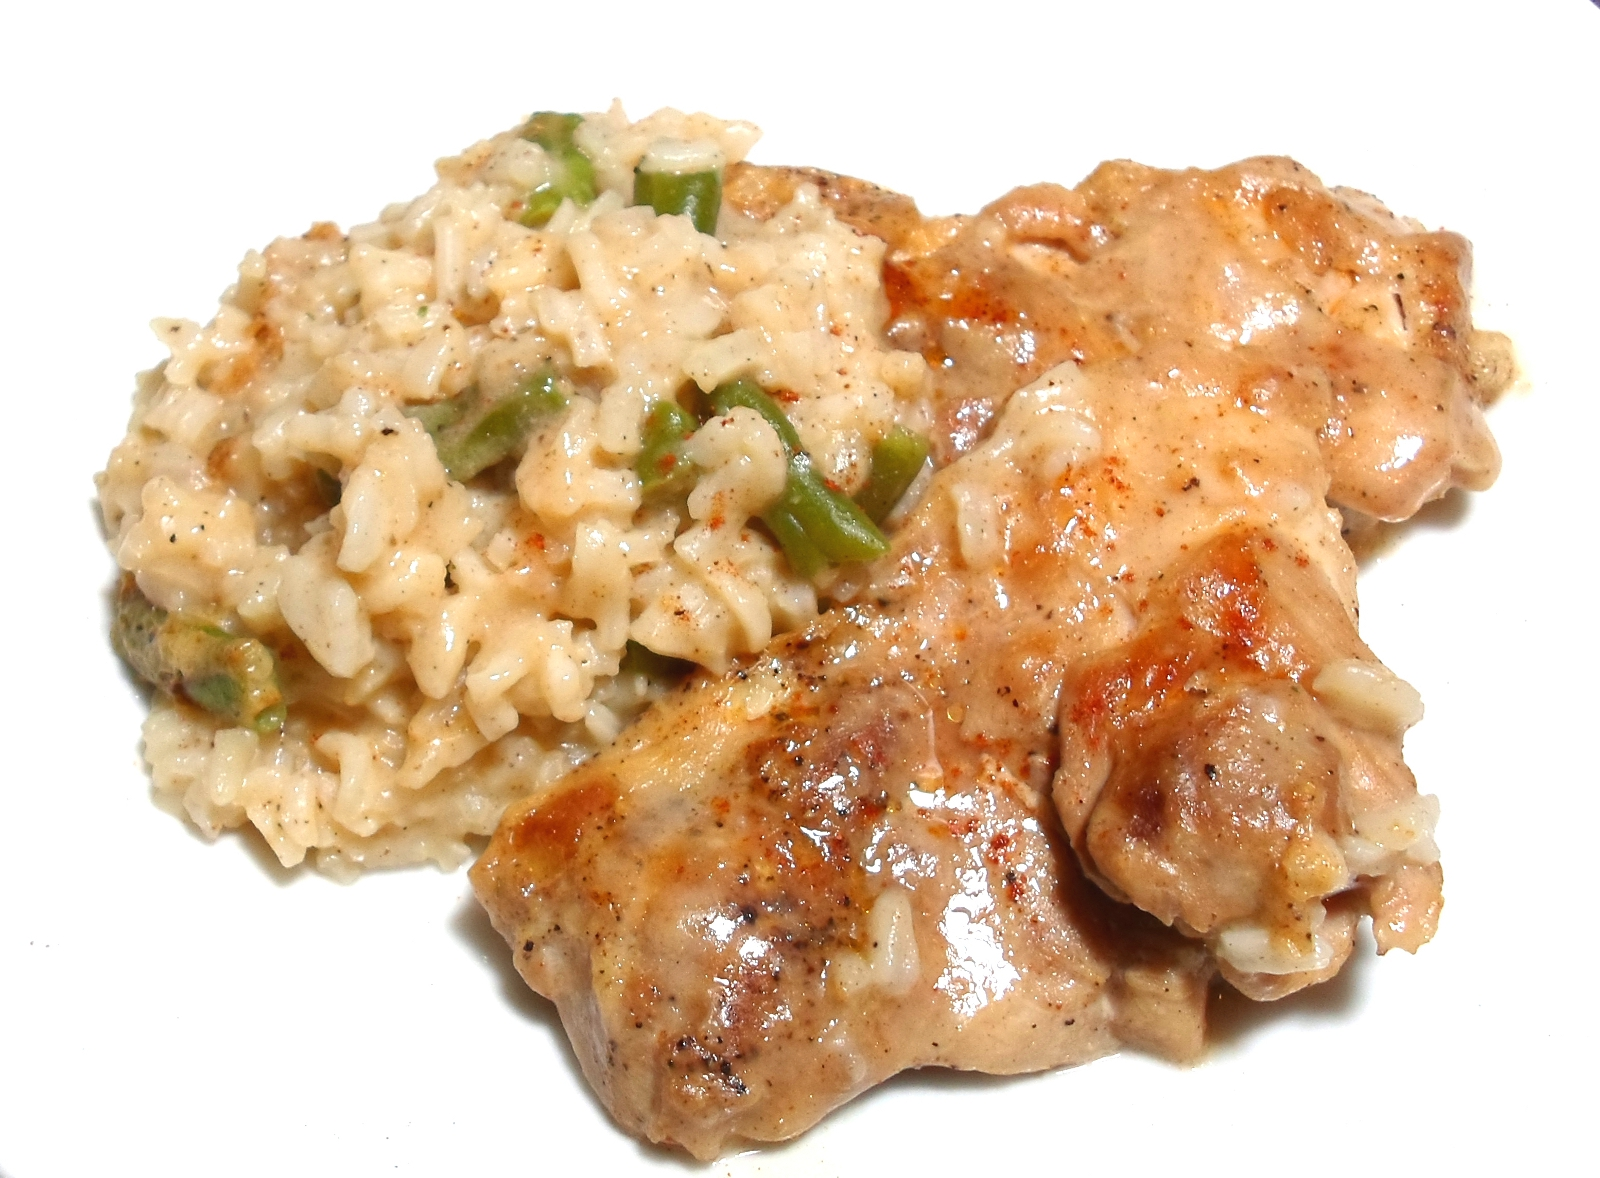 Chef Kendra's Easy Cooking!: Show #98 Chicken and Rice